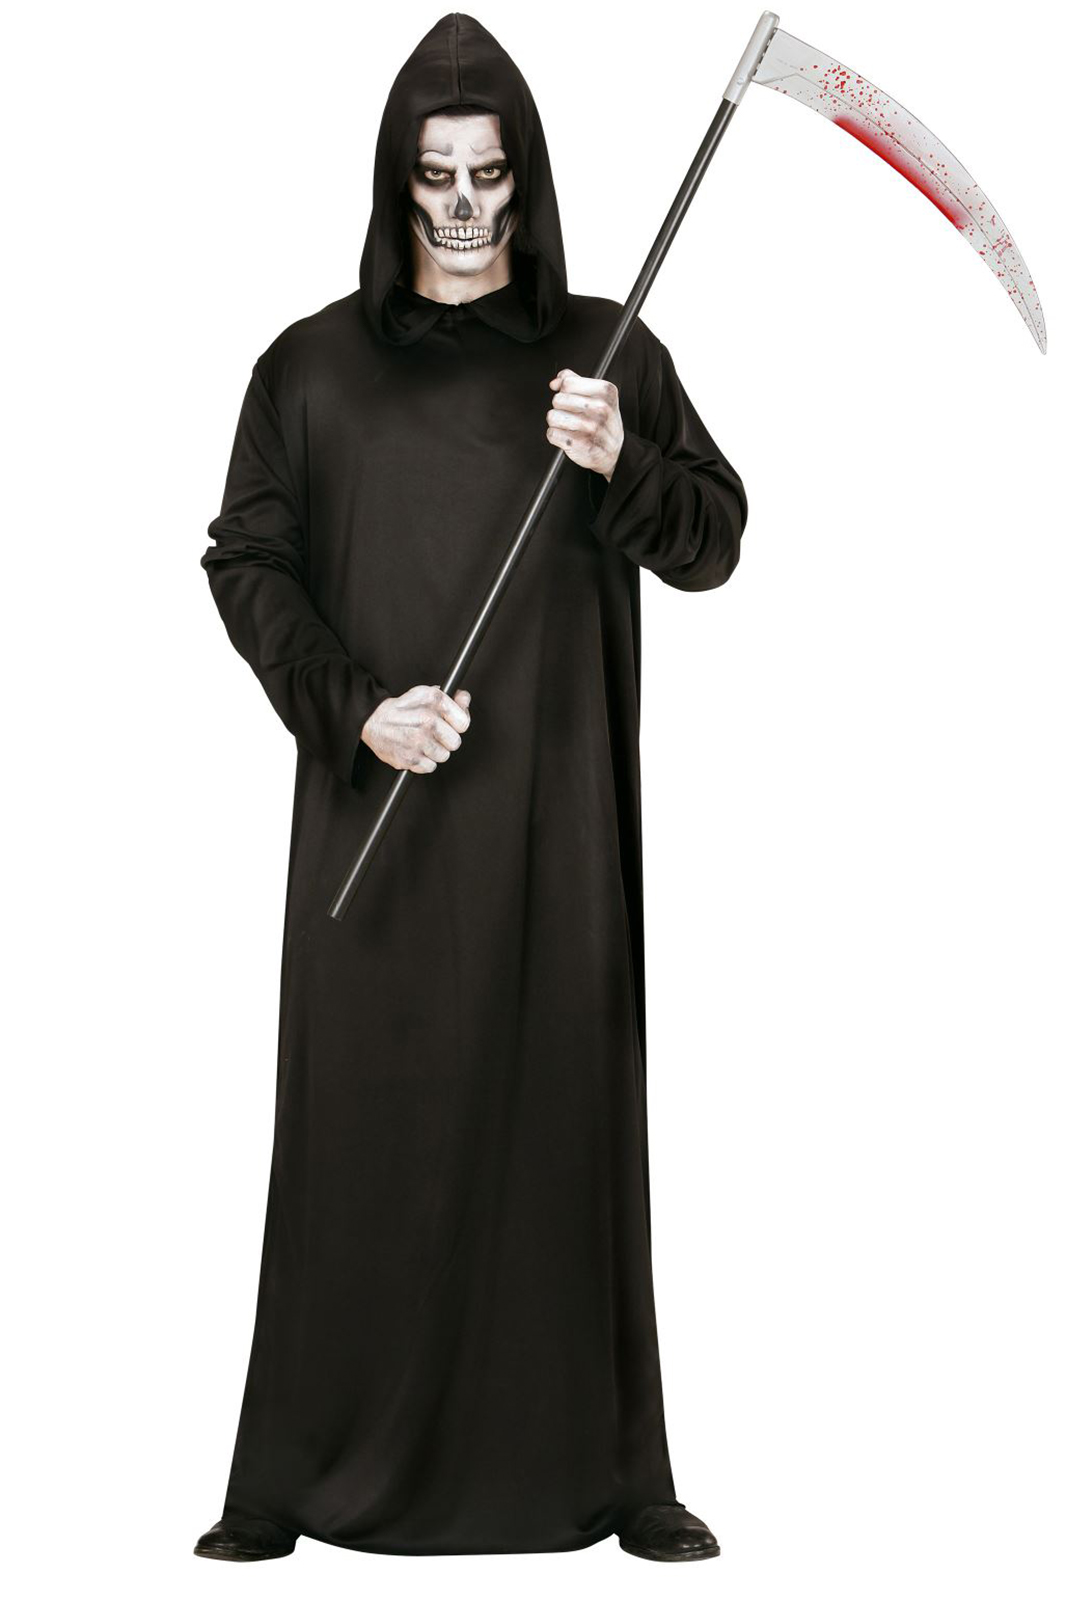 Grim Reaper Hooded Rob Black